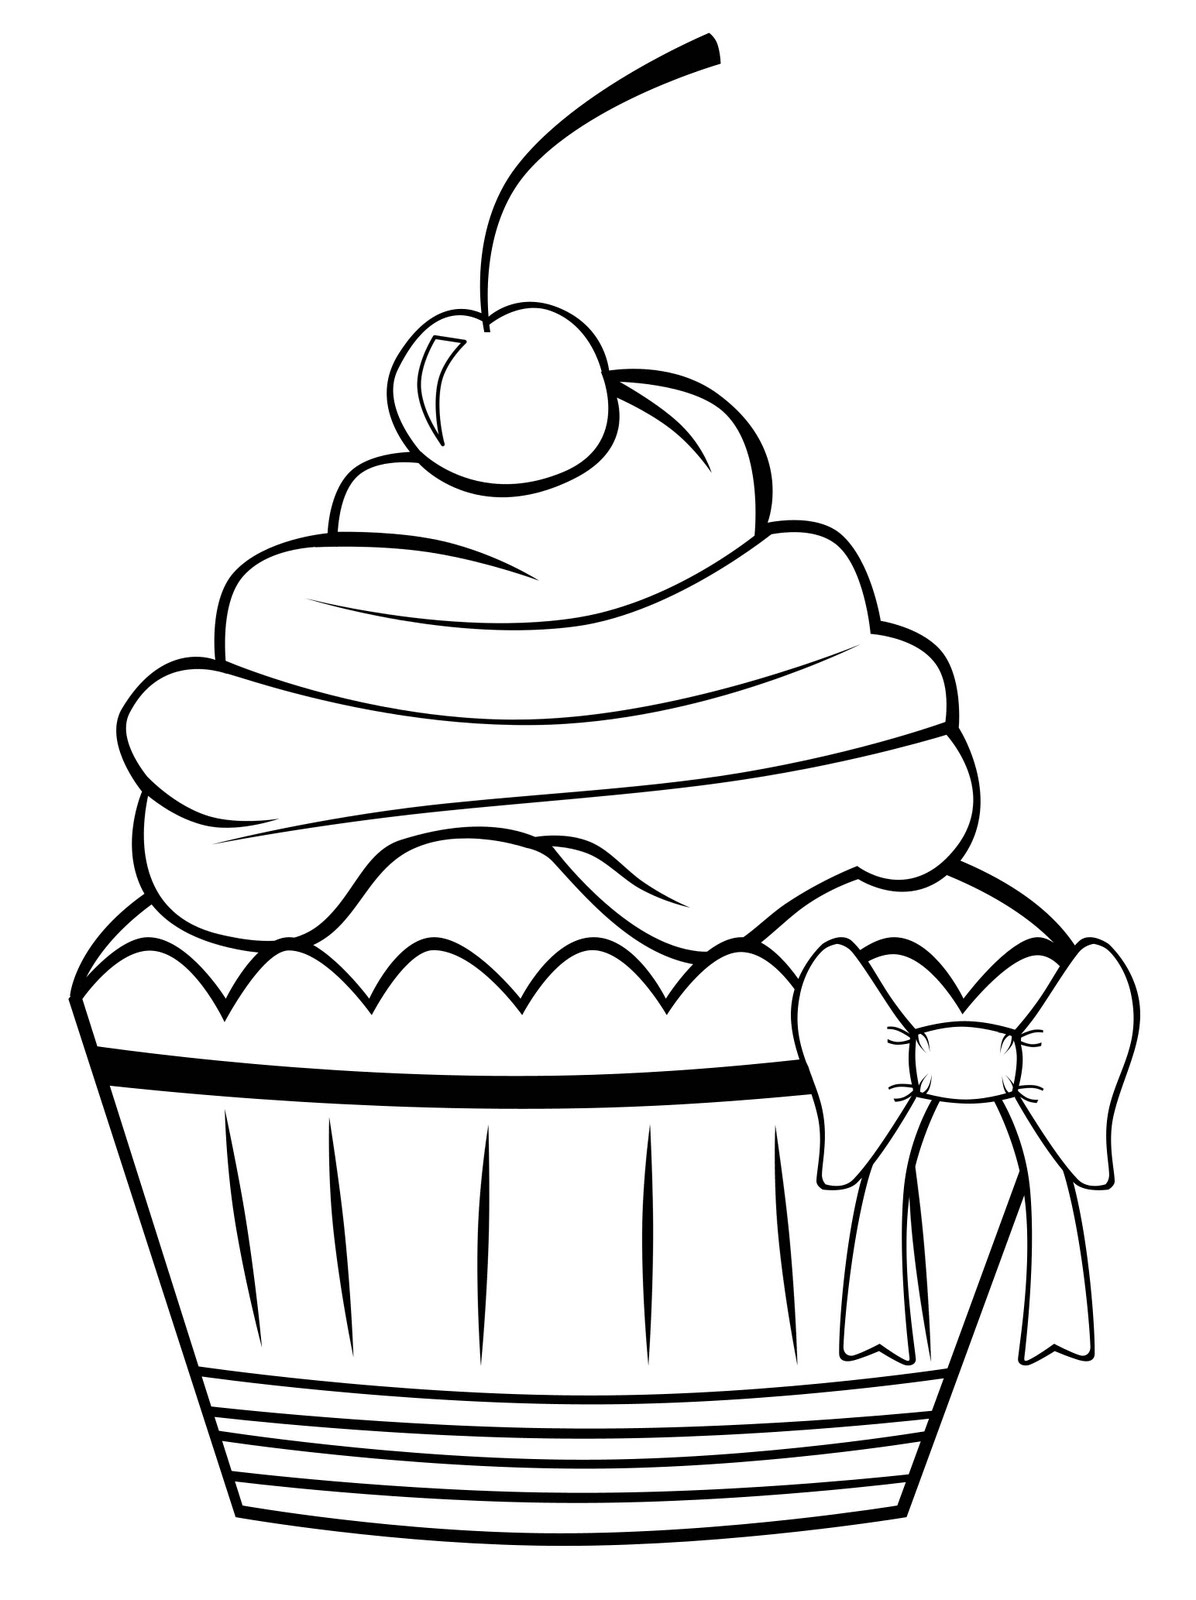 Colouring Pages For Cupcakes : Cupcakes Coloring Pages - Free Printable Pictures Coloring ...